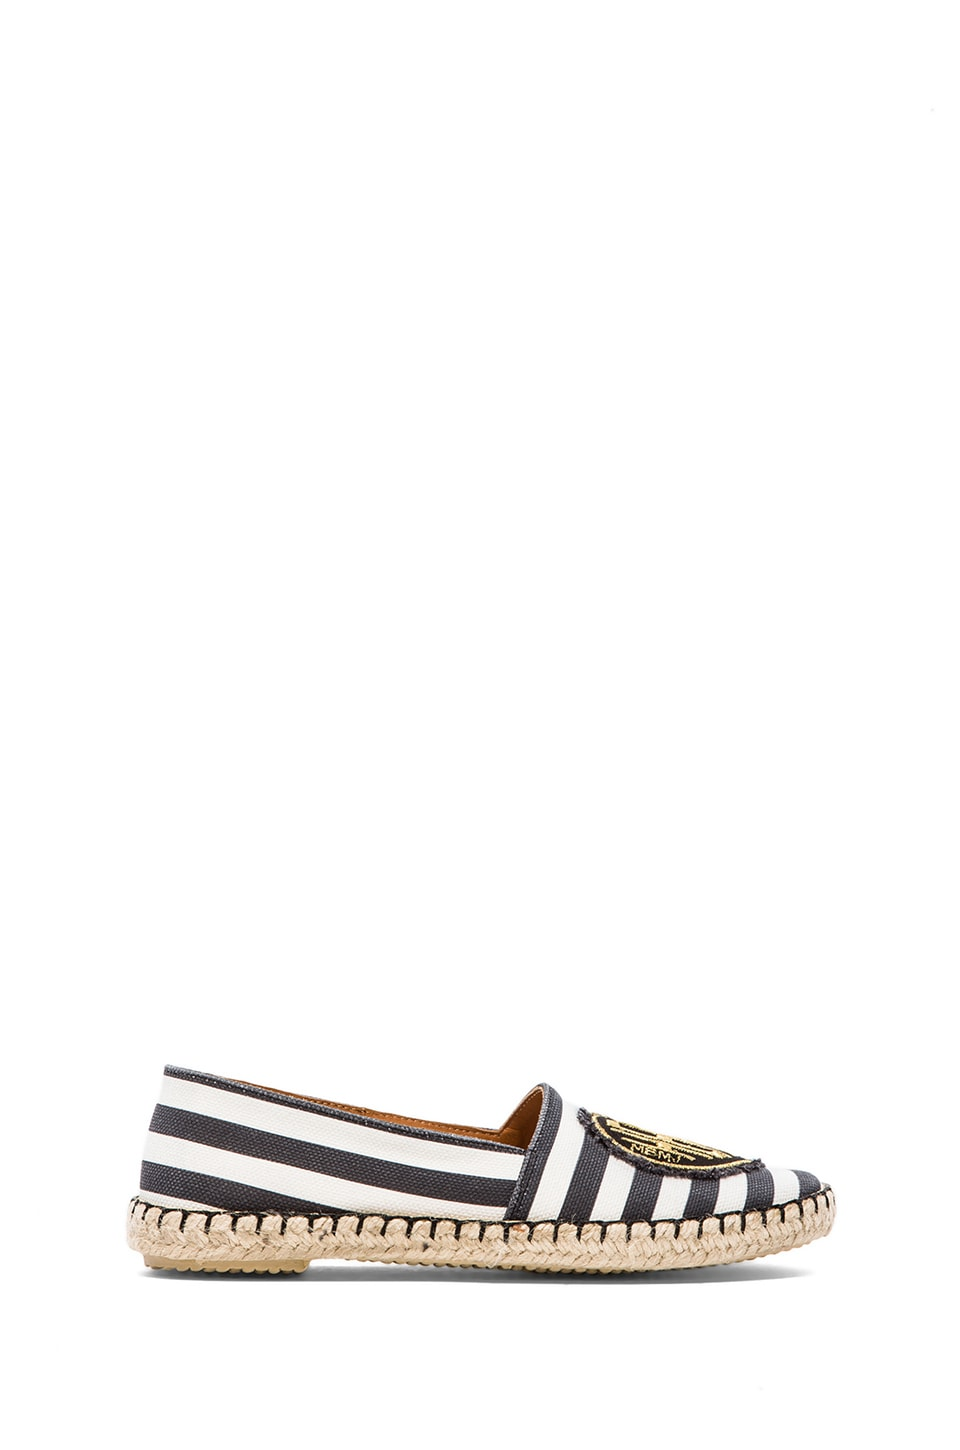 Marc by Marc Jacobs House of Cards Espadrille in Black & White